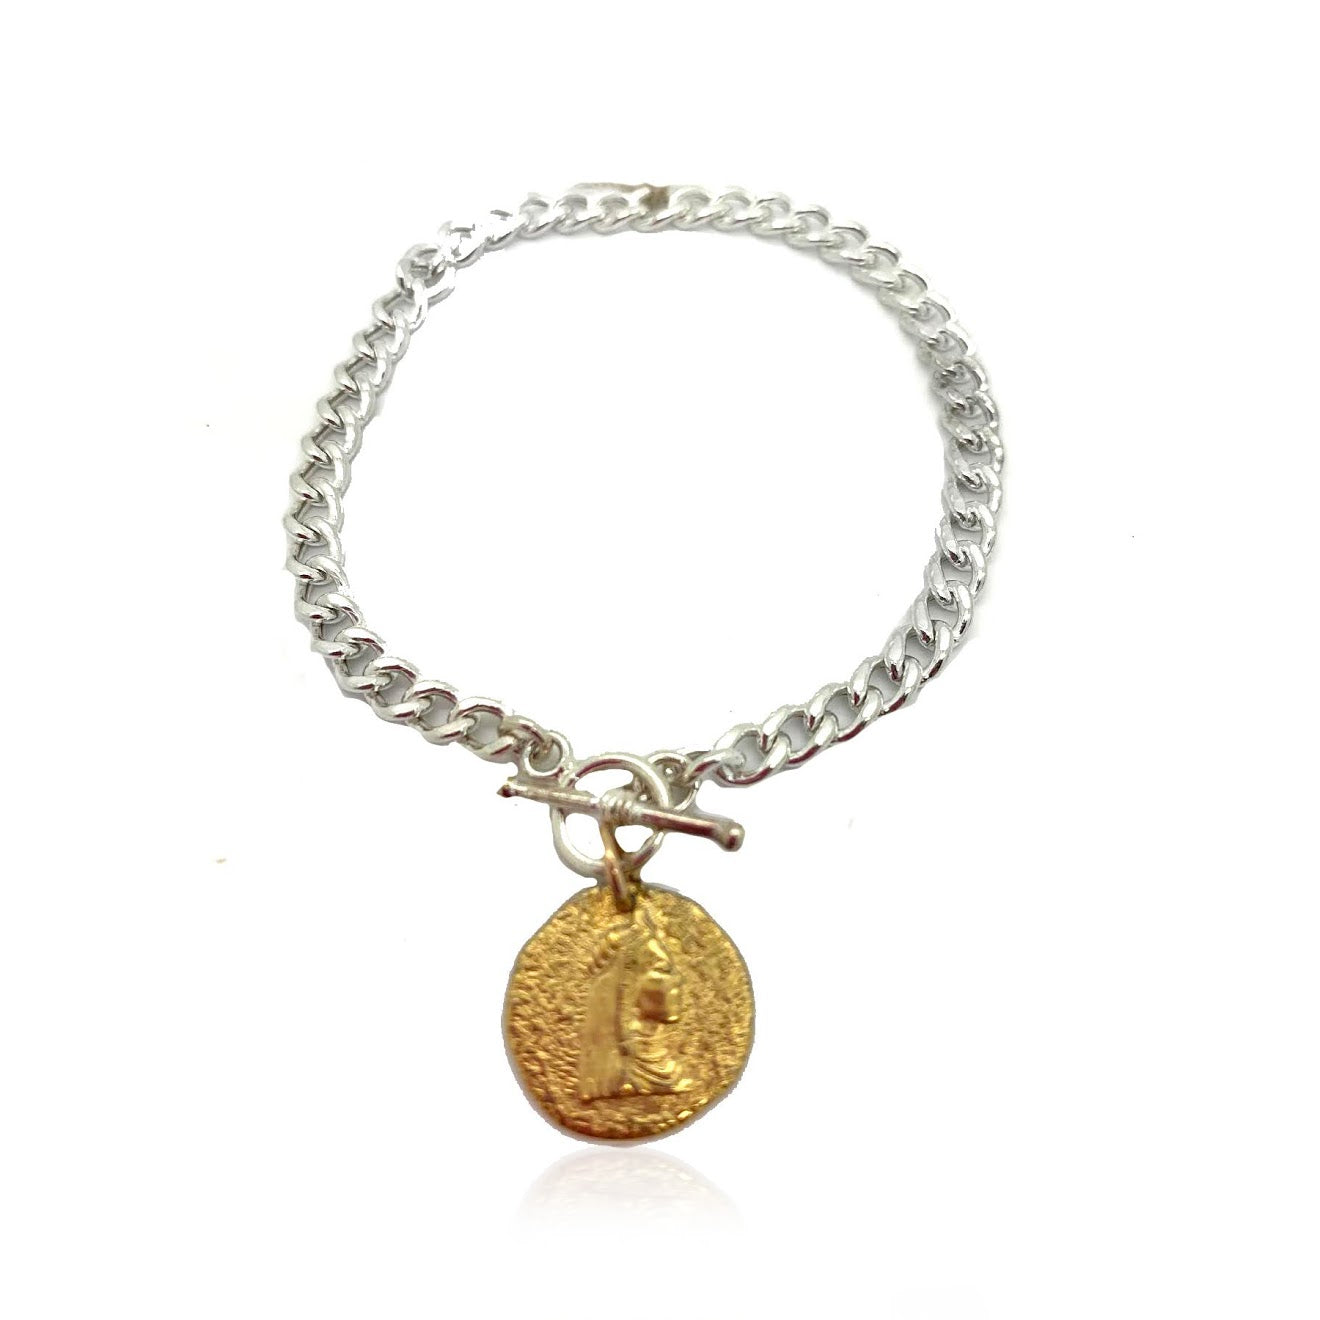 Mixed Metal Coin Charm Bracelet